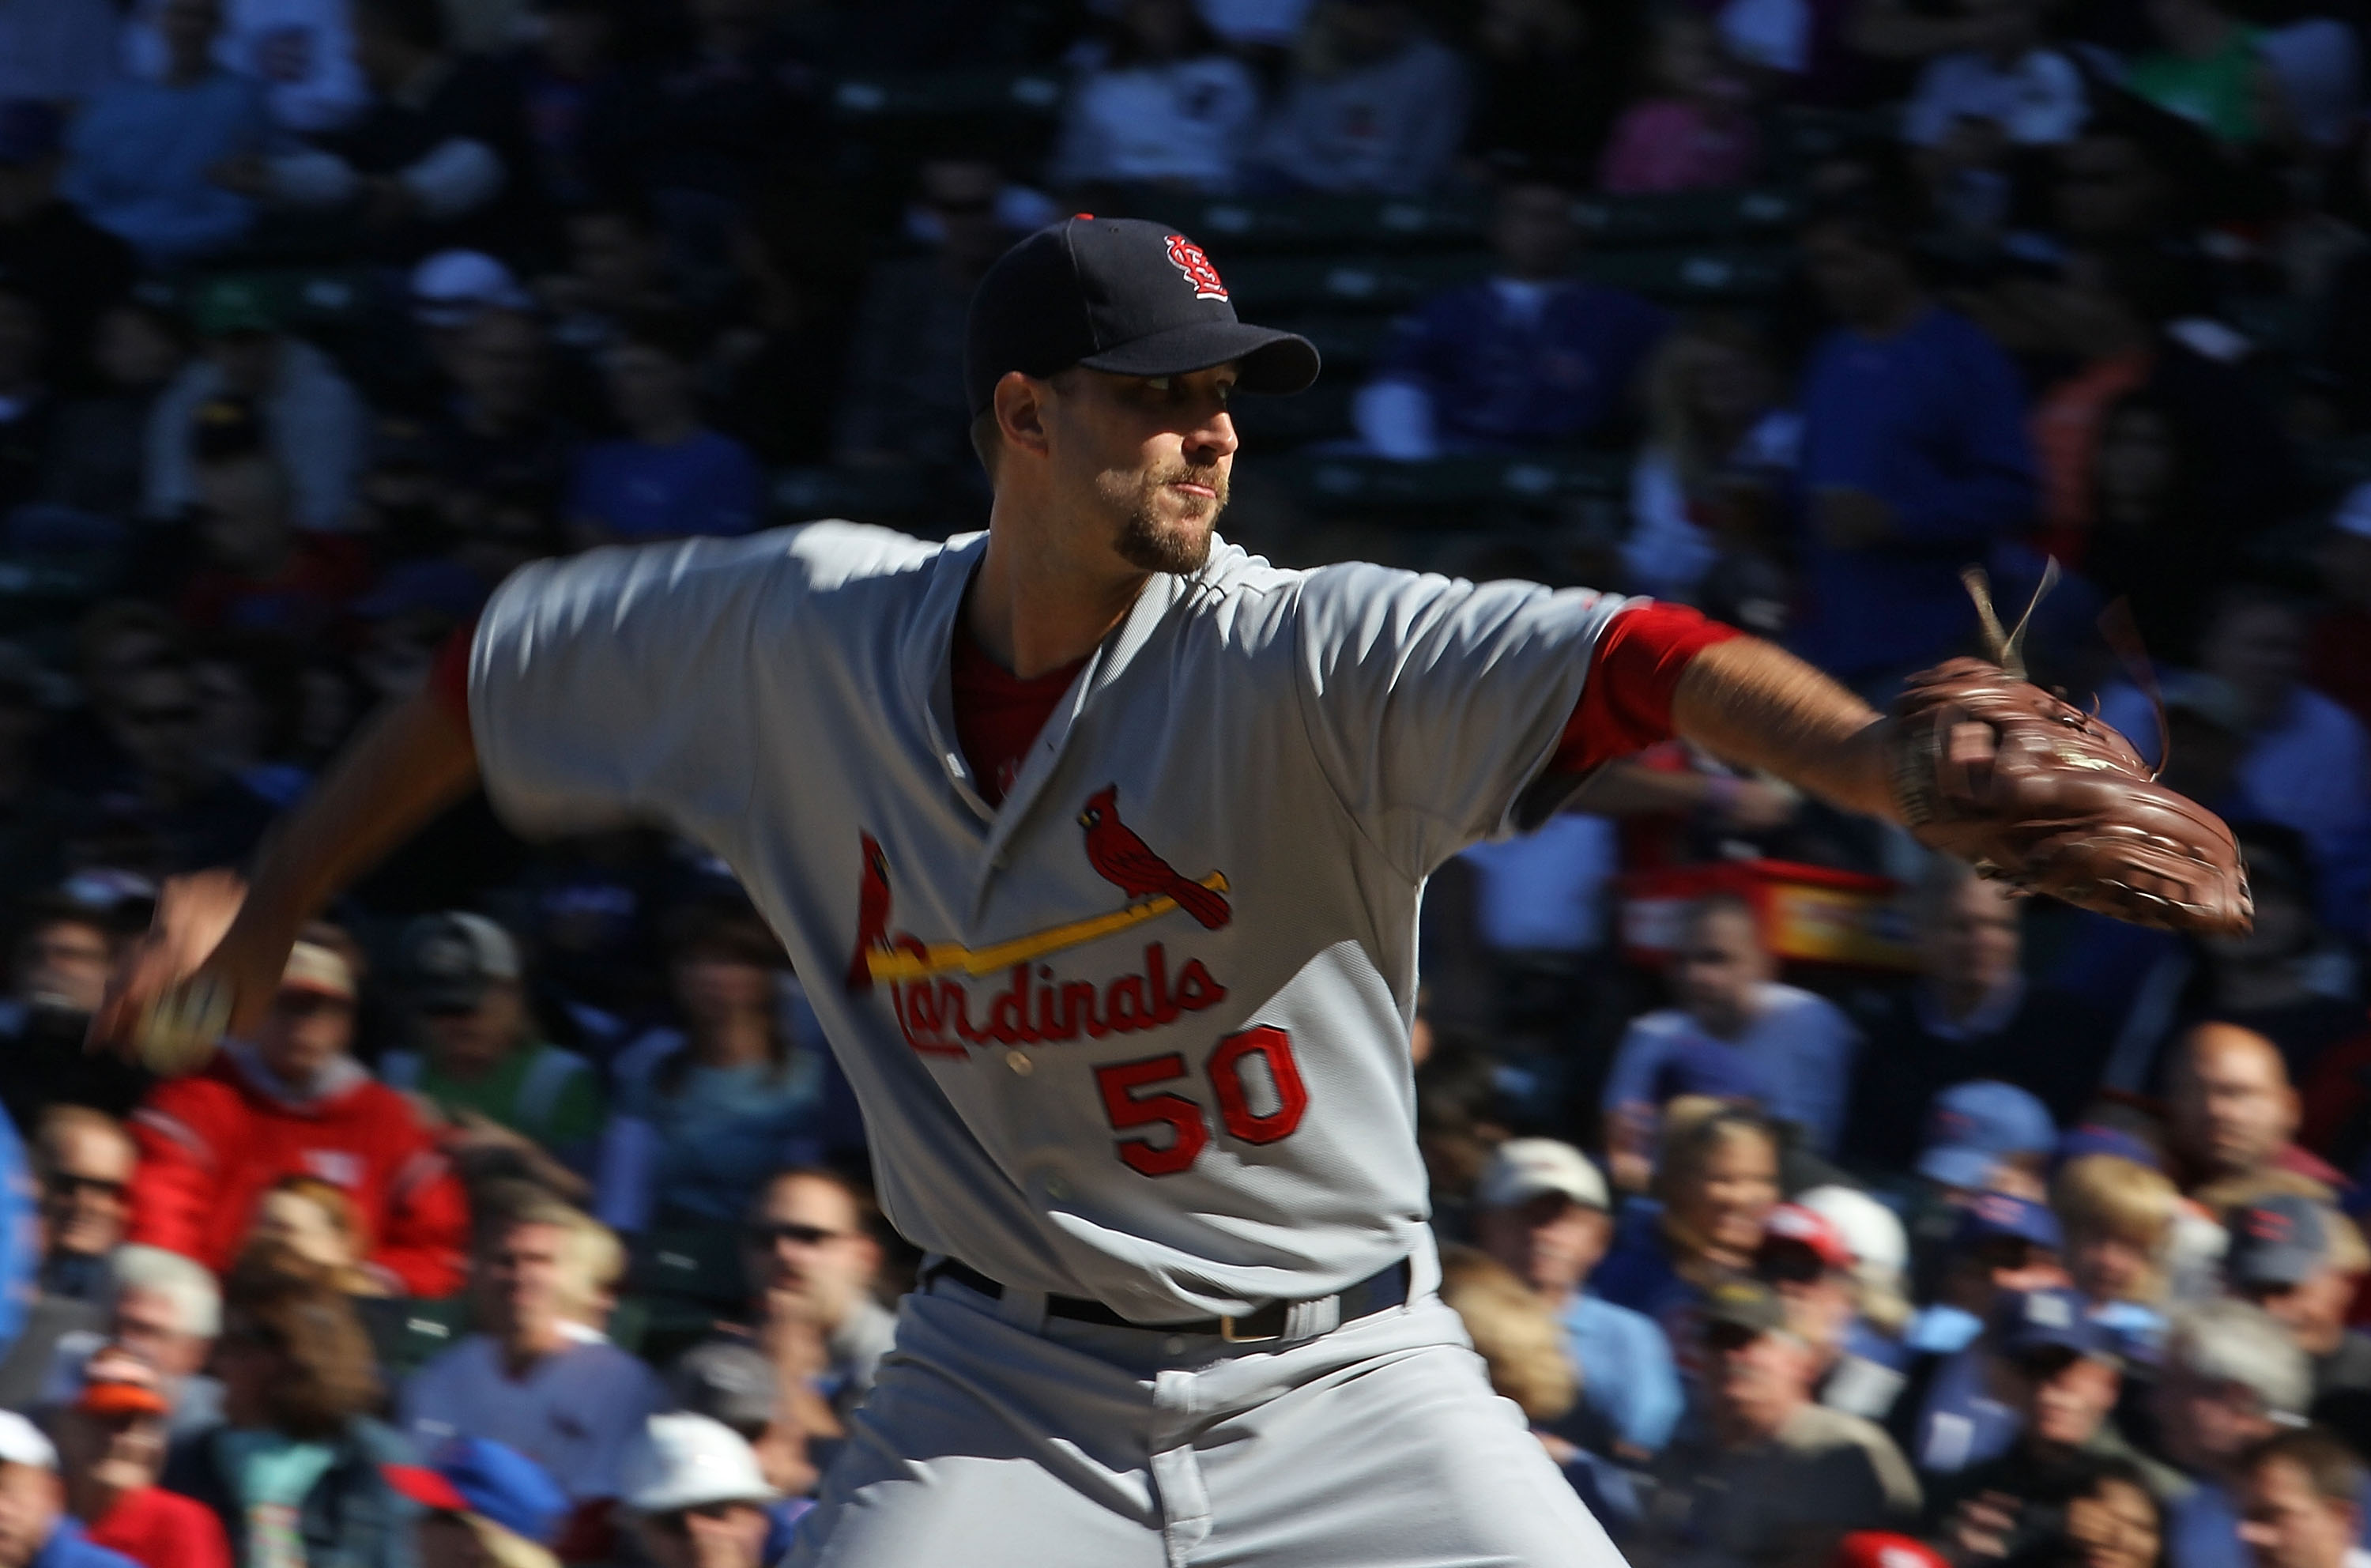 CHICAGO - SEPTEMBER 24: Starting pitcher Adam Wainwright #50 of the St. Louis Cardinals pitches his way to his 20th win of the season against the Chicago Cubs at Wrigley Field on September 24, 2010 in Chicago, Illinois. The Cardinals defeated the Cubs 7-1